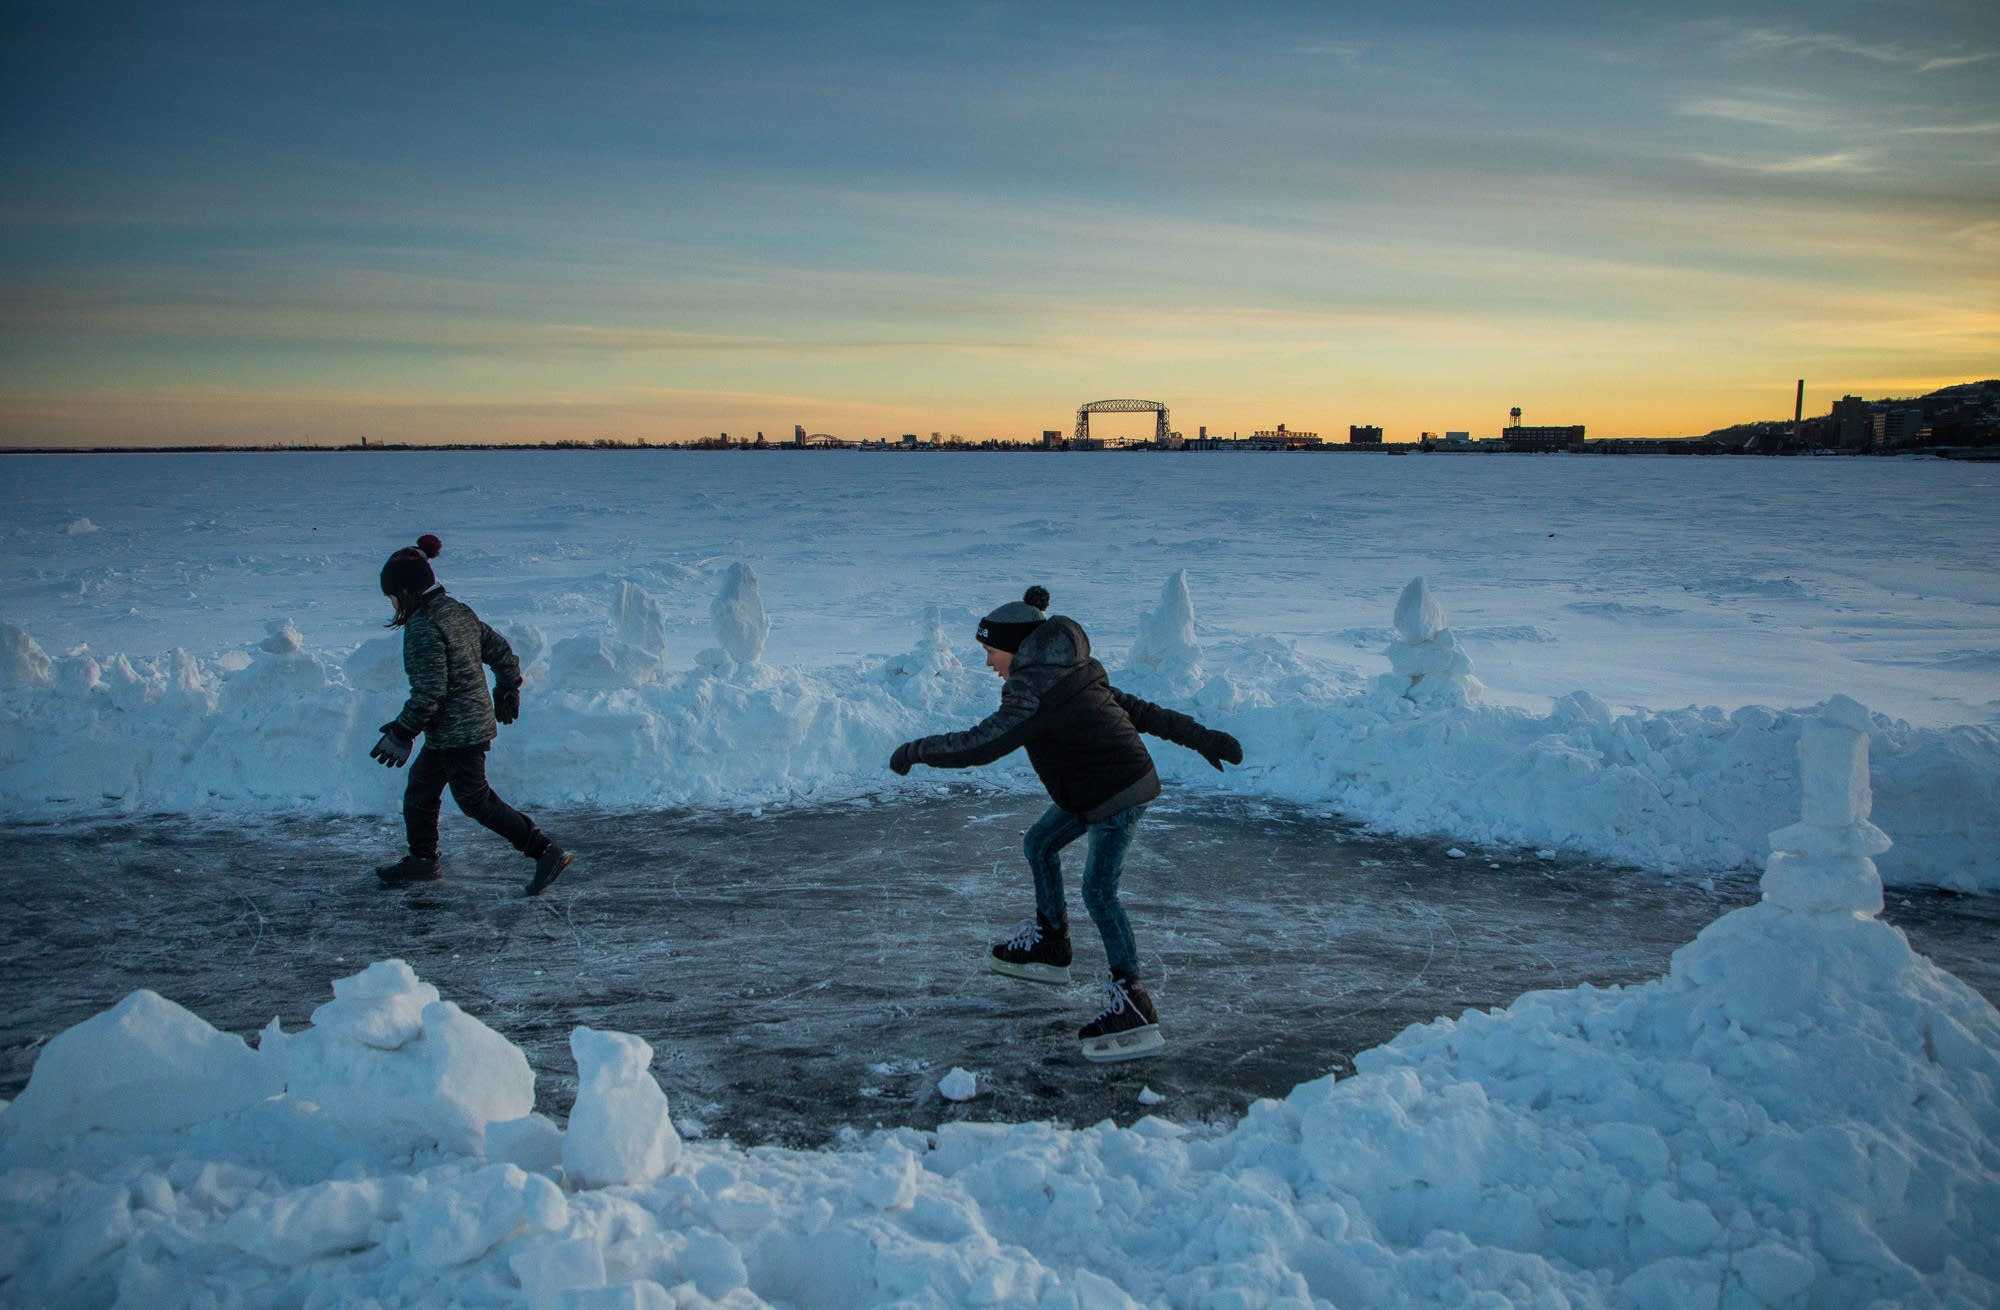 Ansel Cazier skates on Lake Superior with his friend George Belmore.